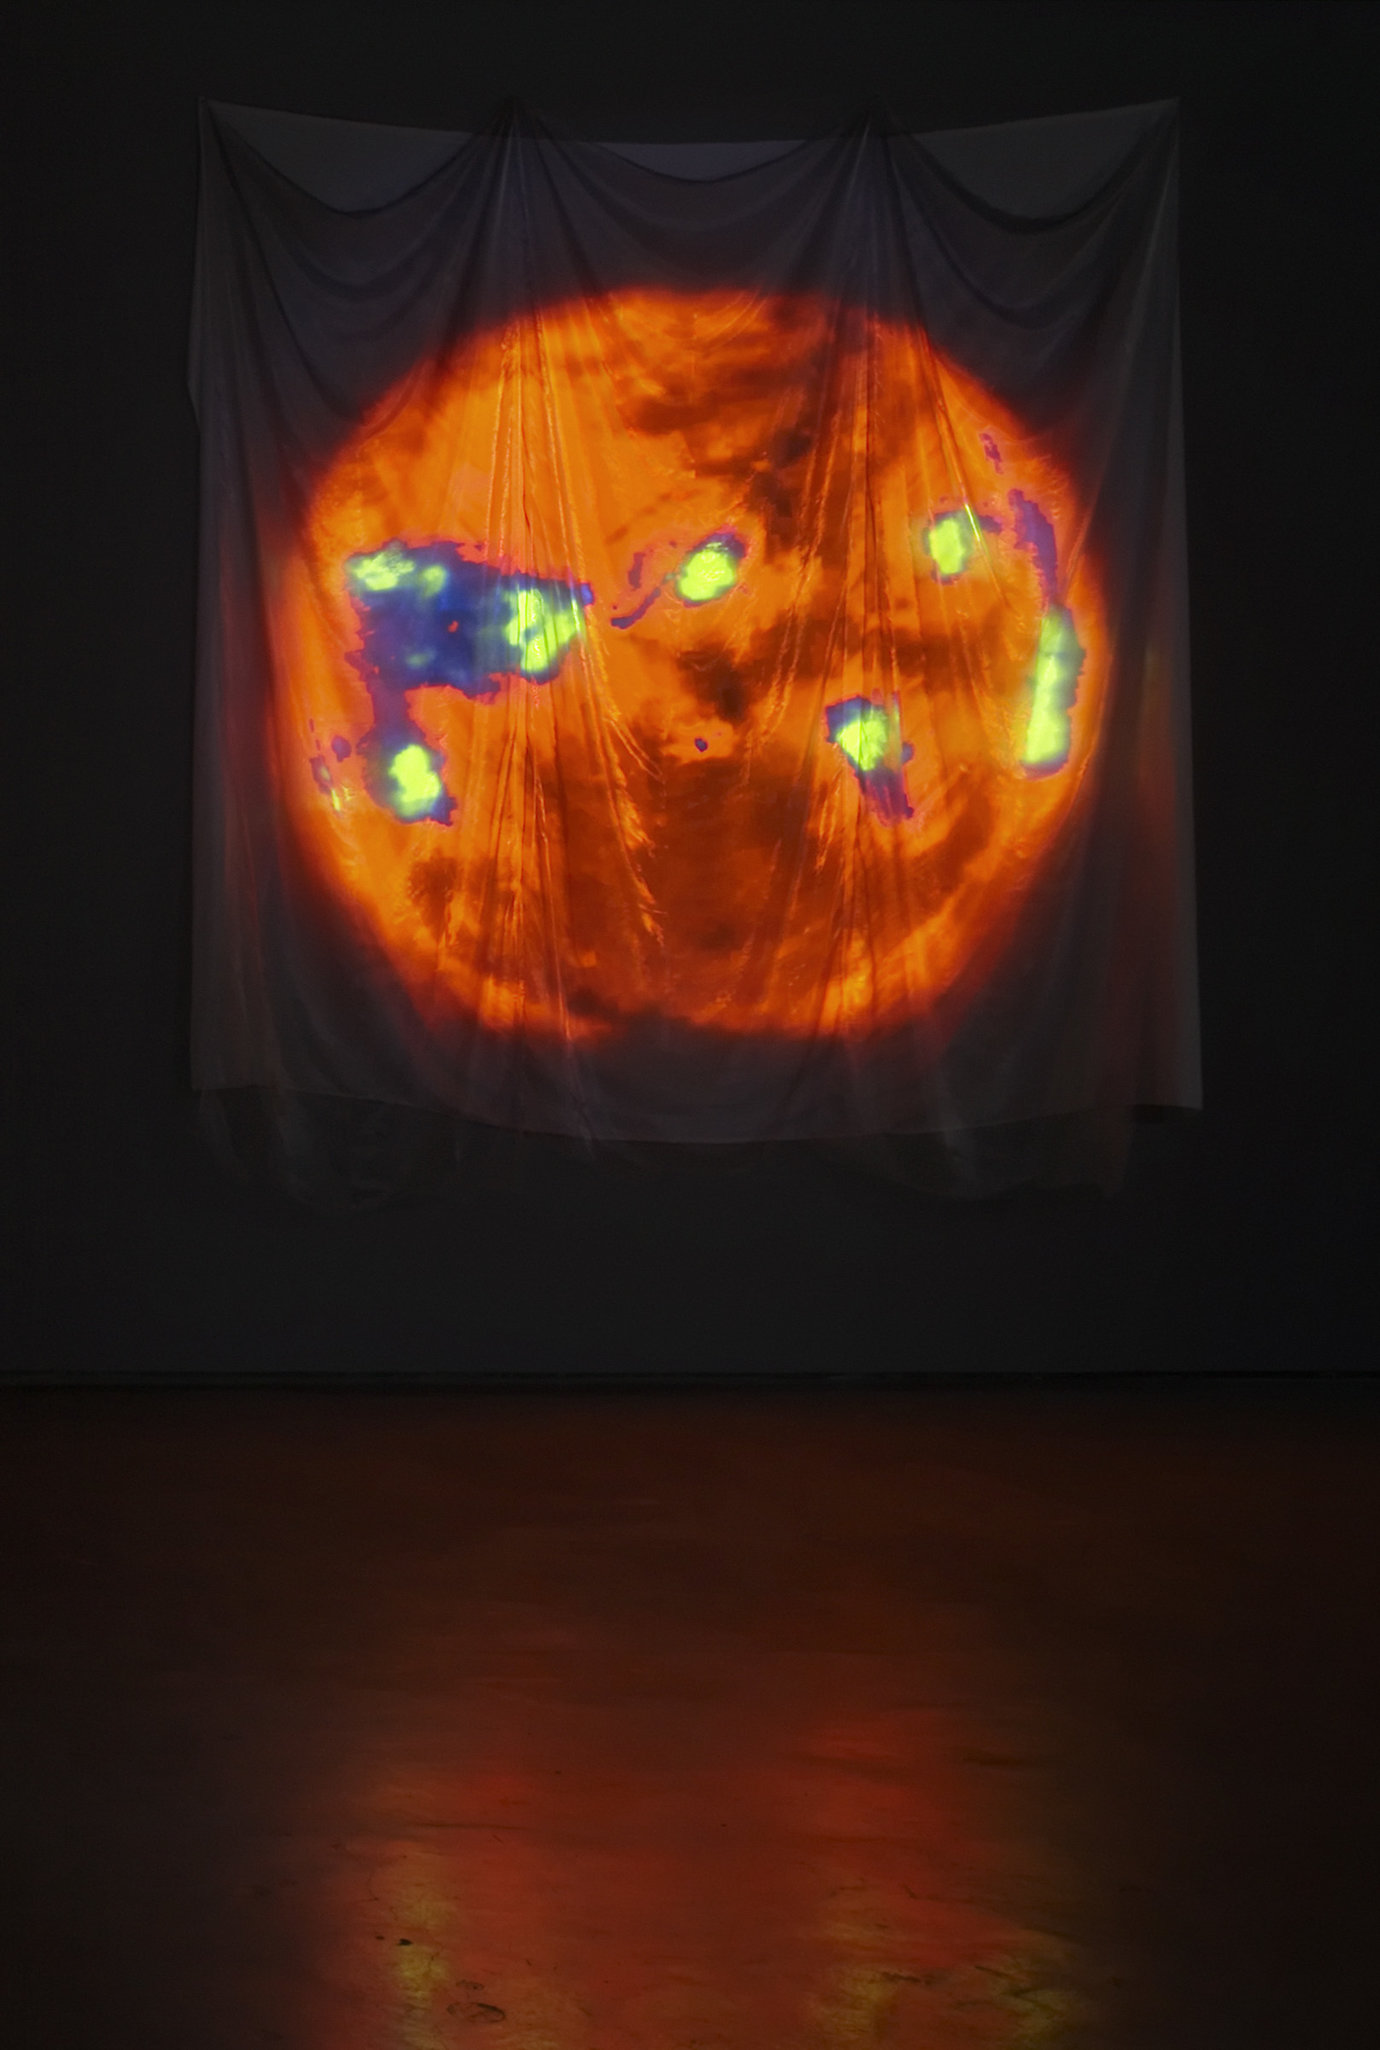 , 2007. Cloth with random digital video projection, installation dimensions variable; cloth approximately 14' x 12'